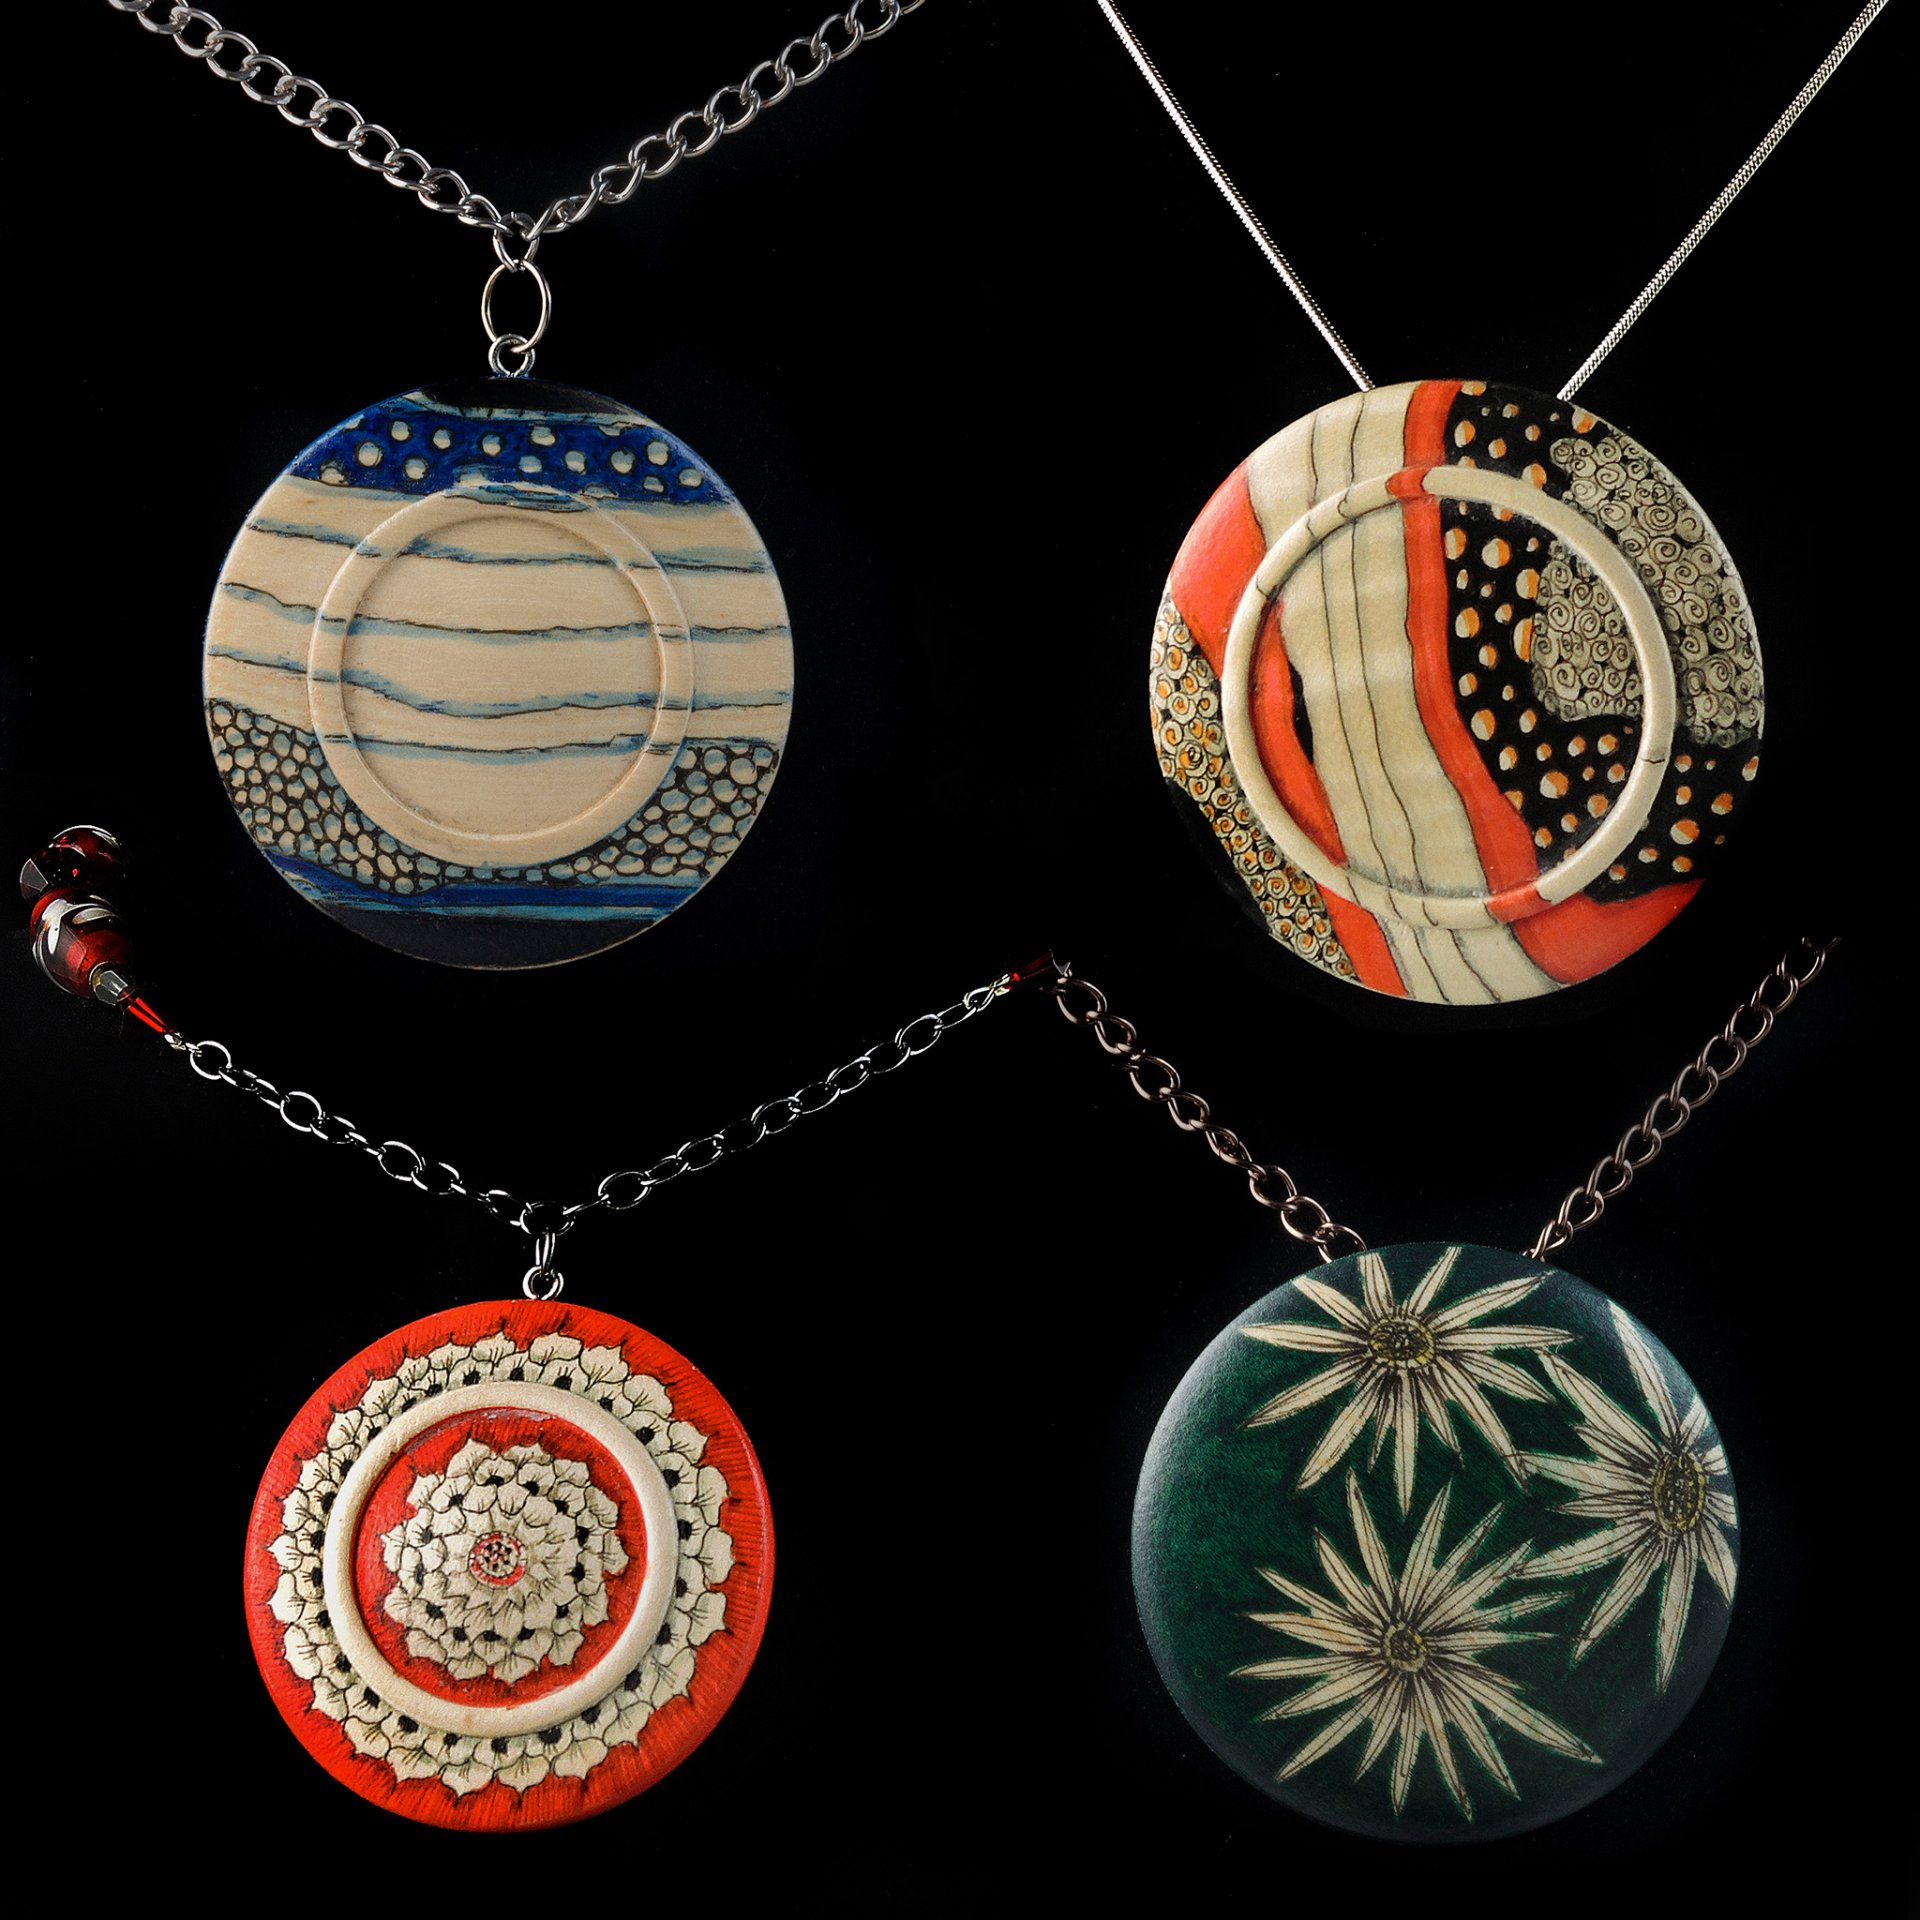 Pendants embellished with archival inks